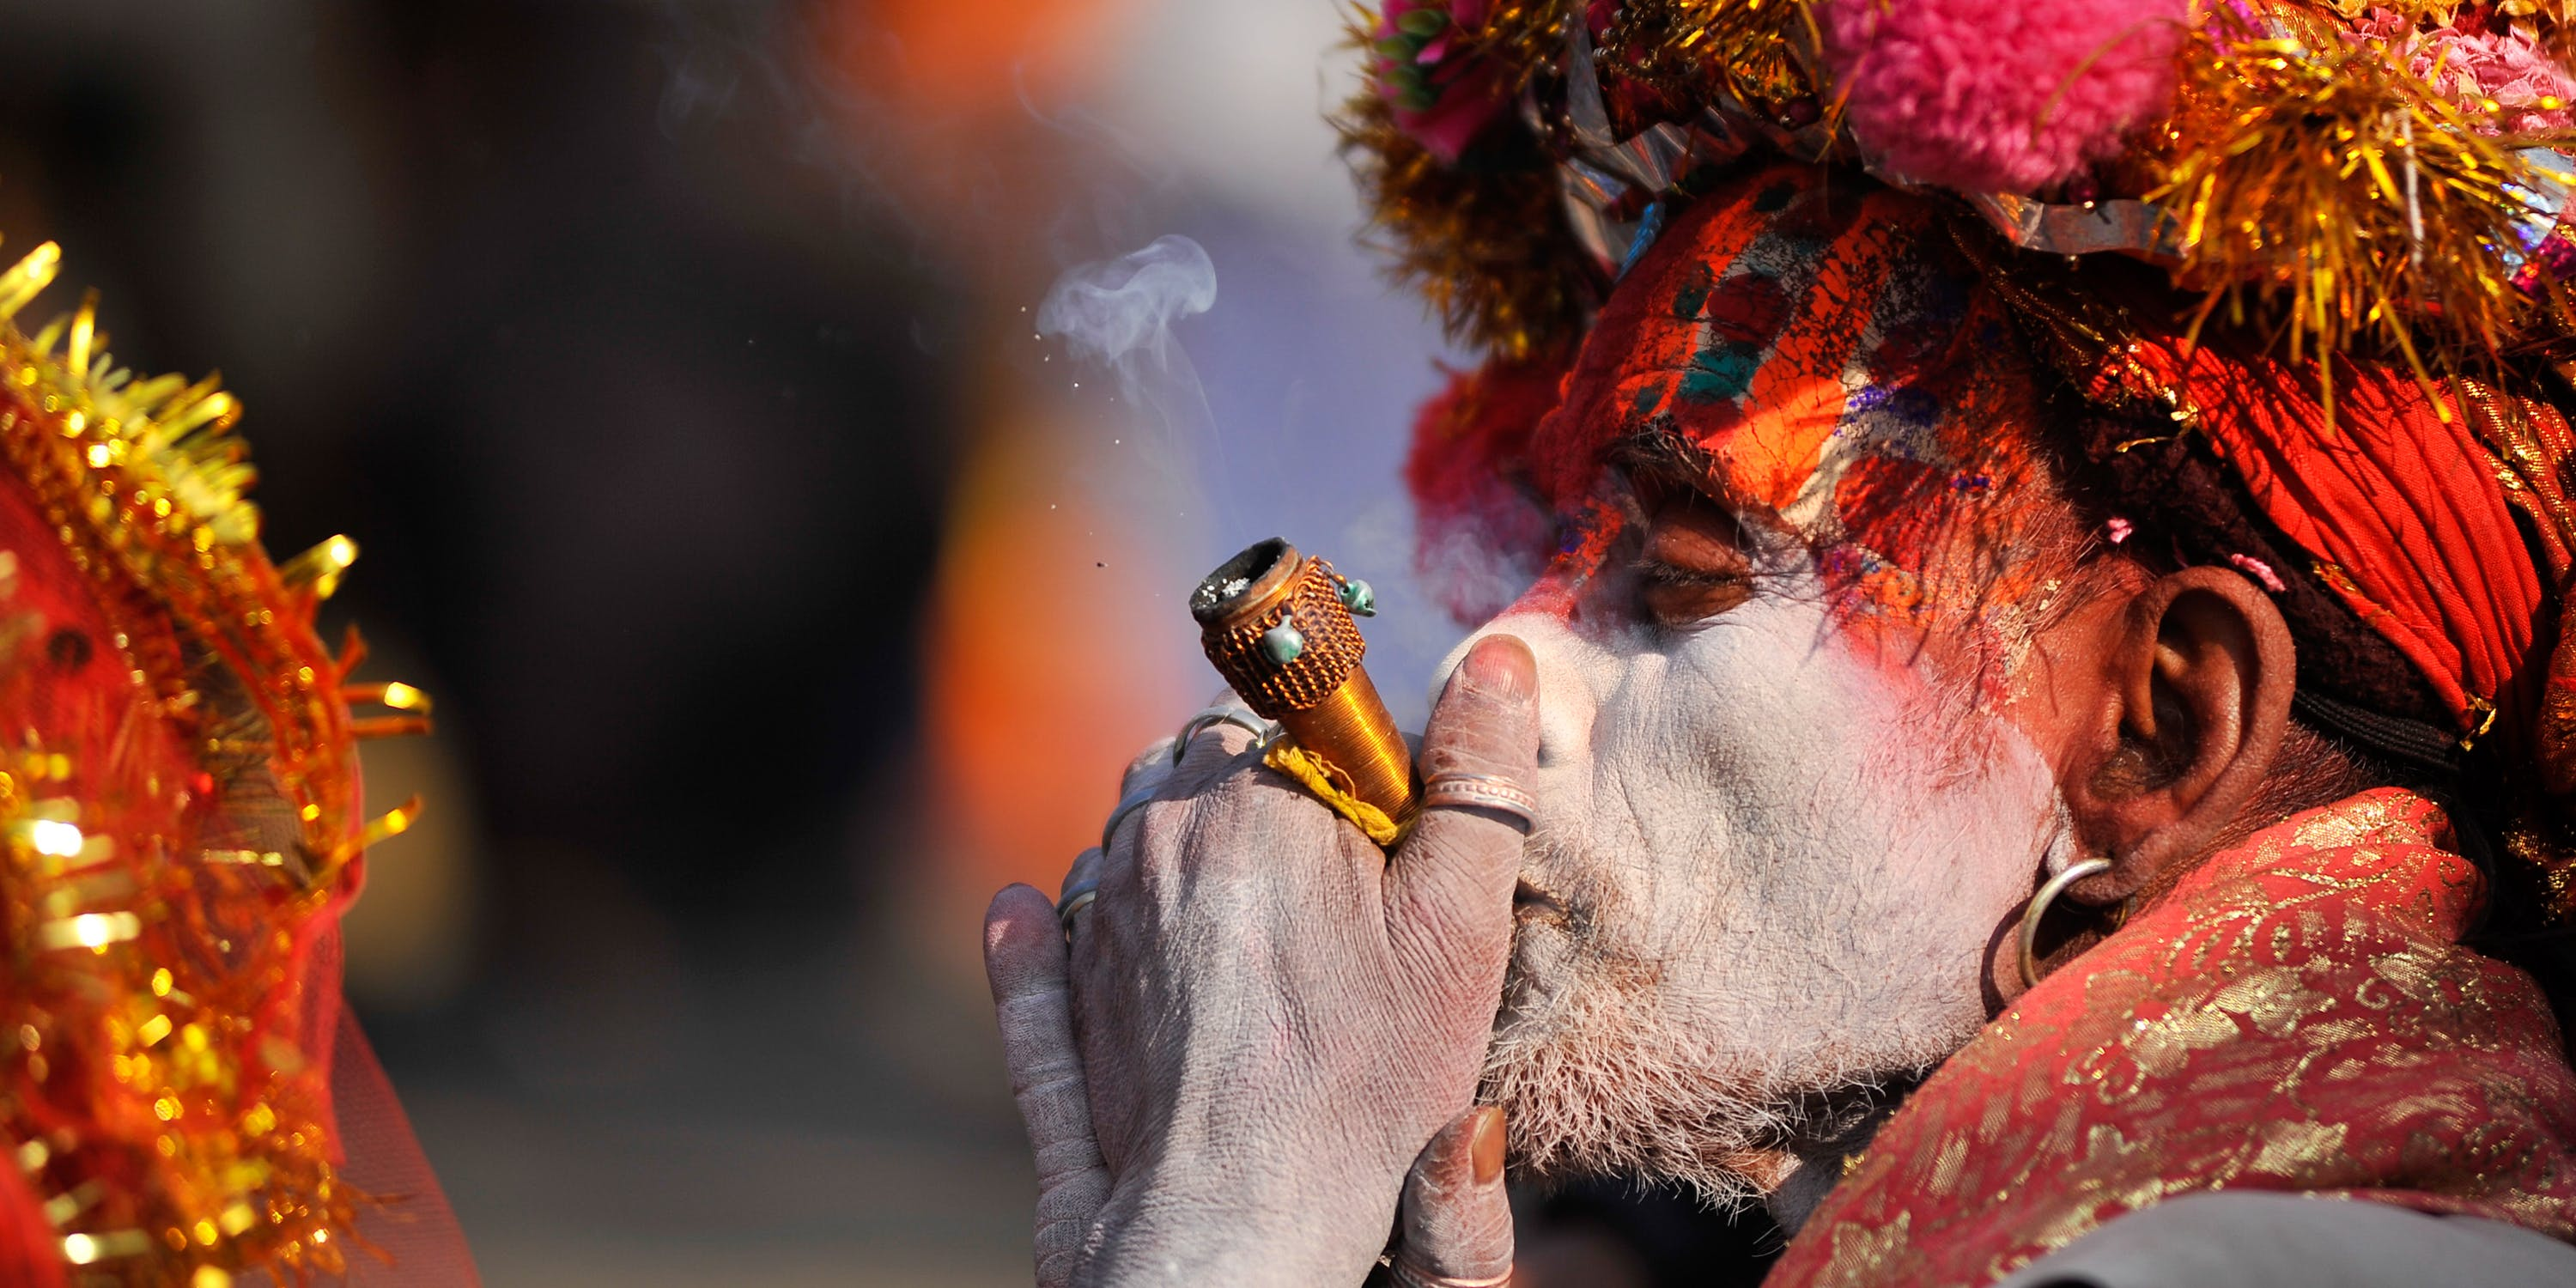 A colorful Hindu Sadhu or Holy Man smokes marijuana at the